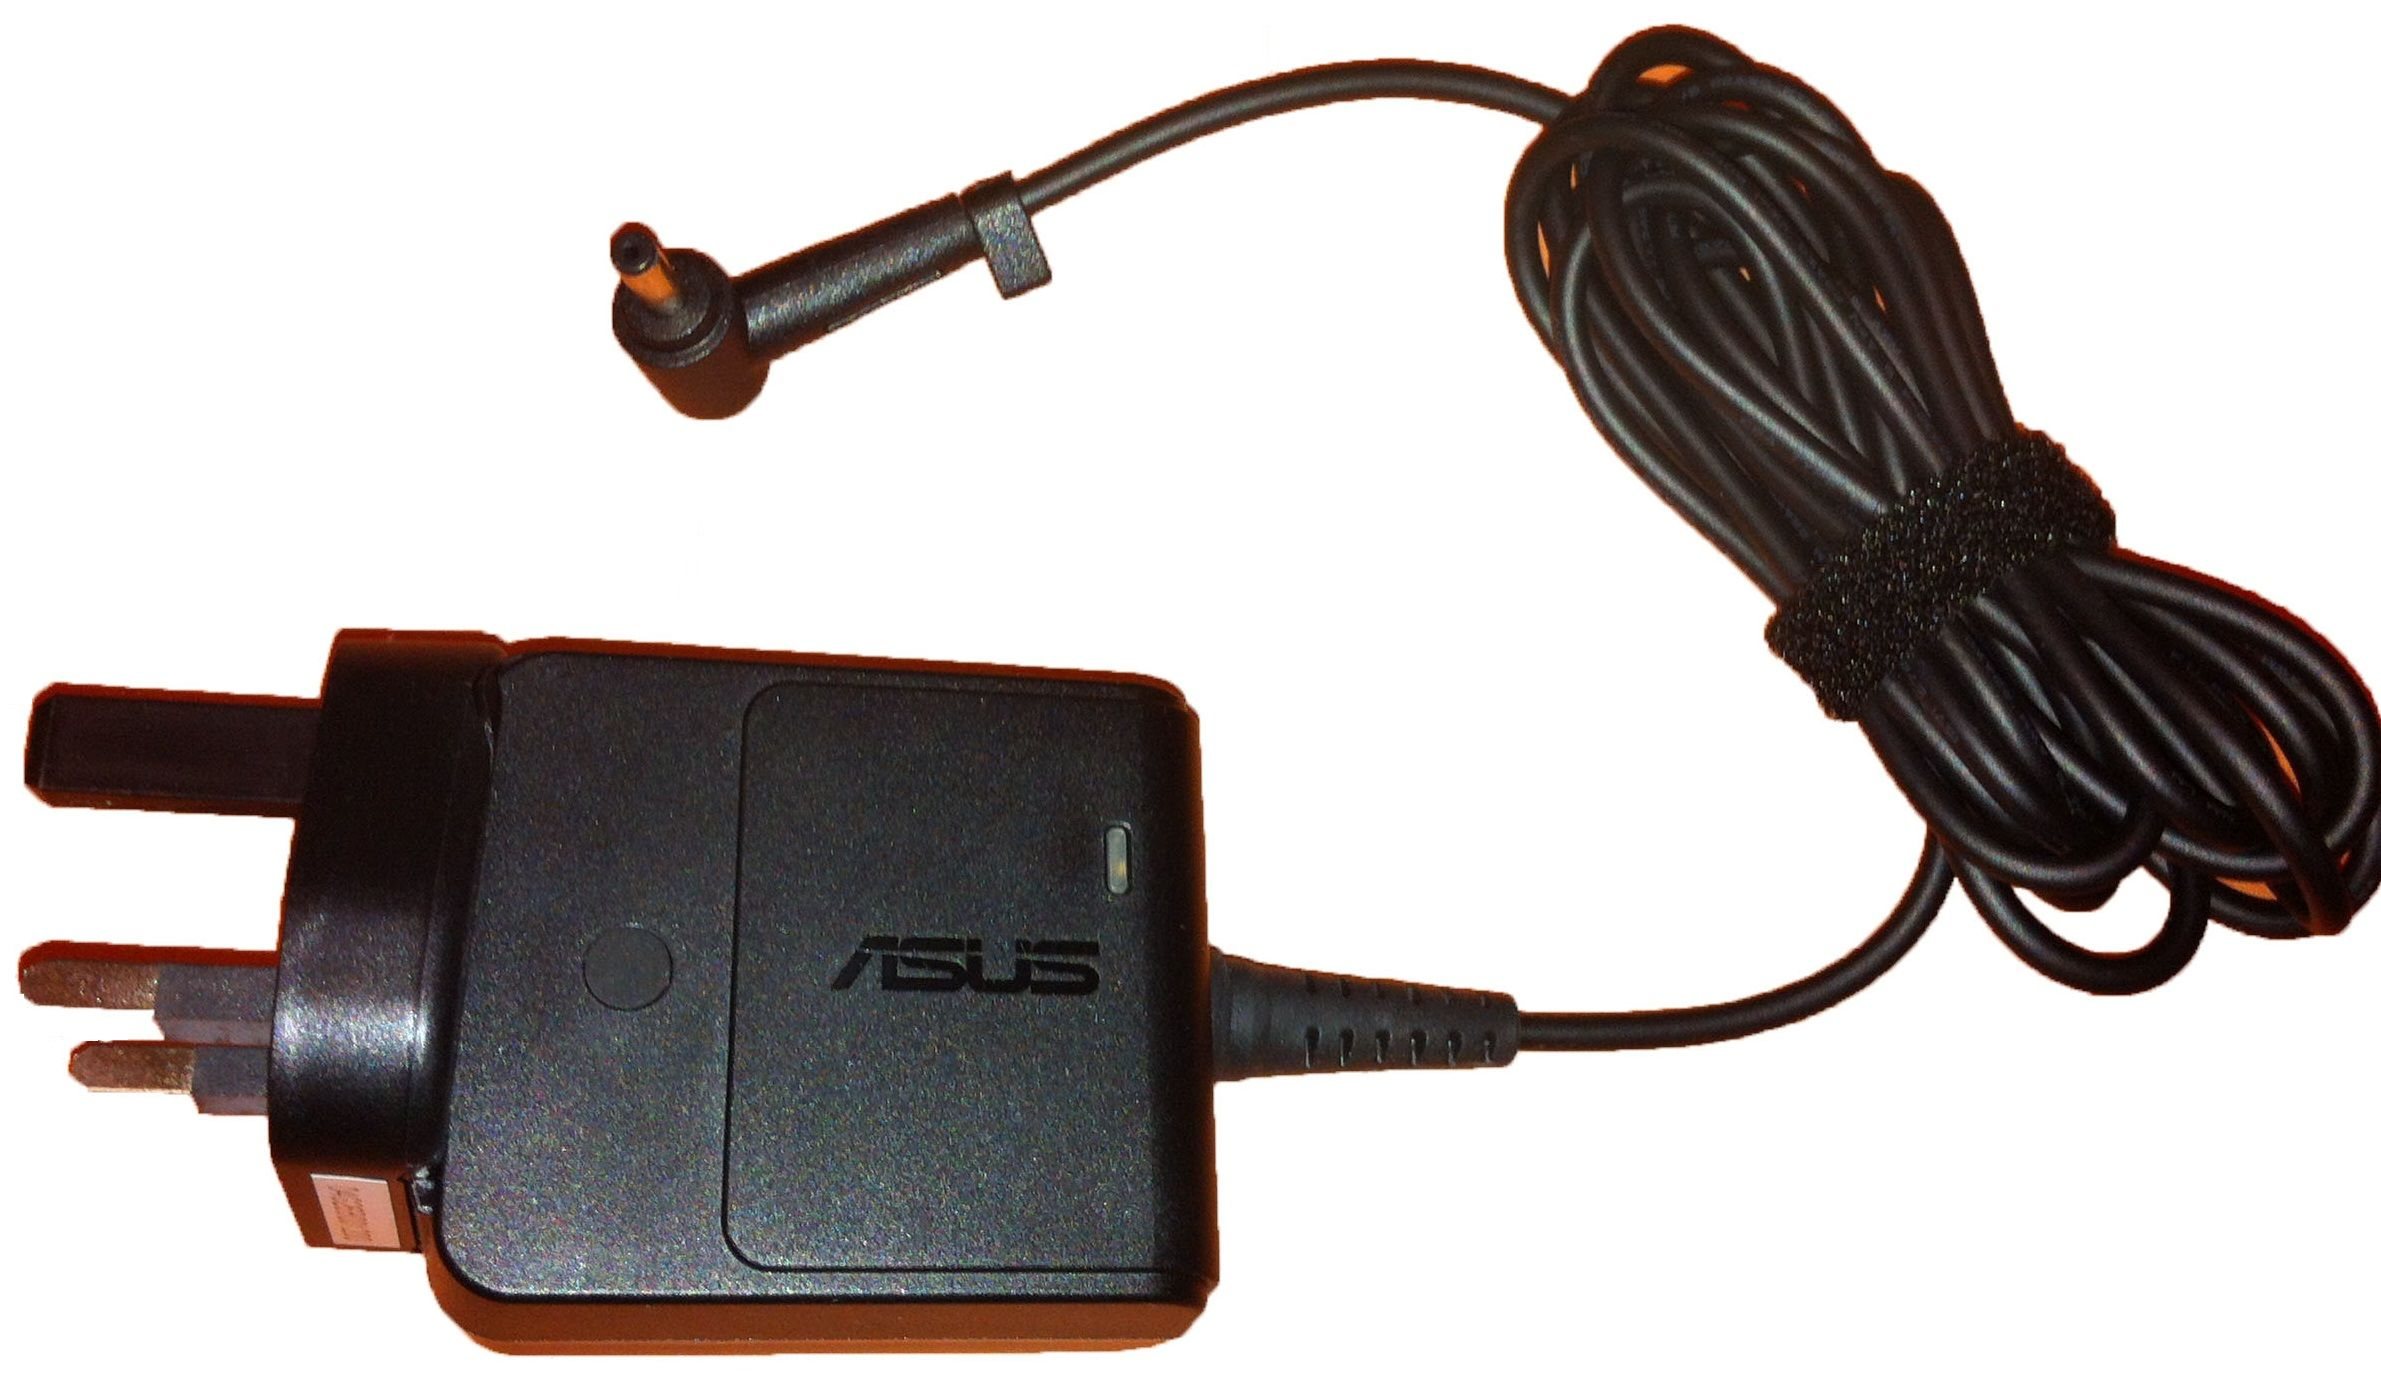 Asus Ad891m21 Notebook Charger 13412 Asus Ad891m21